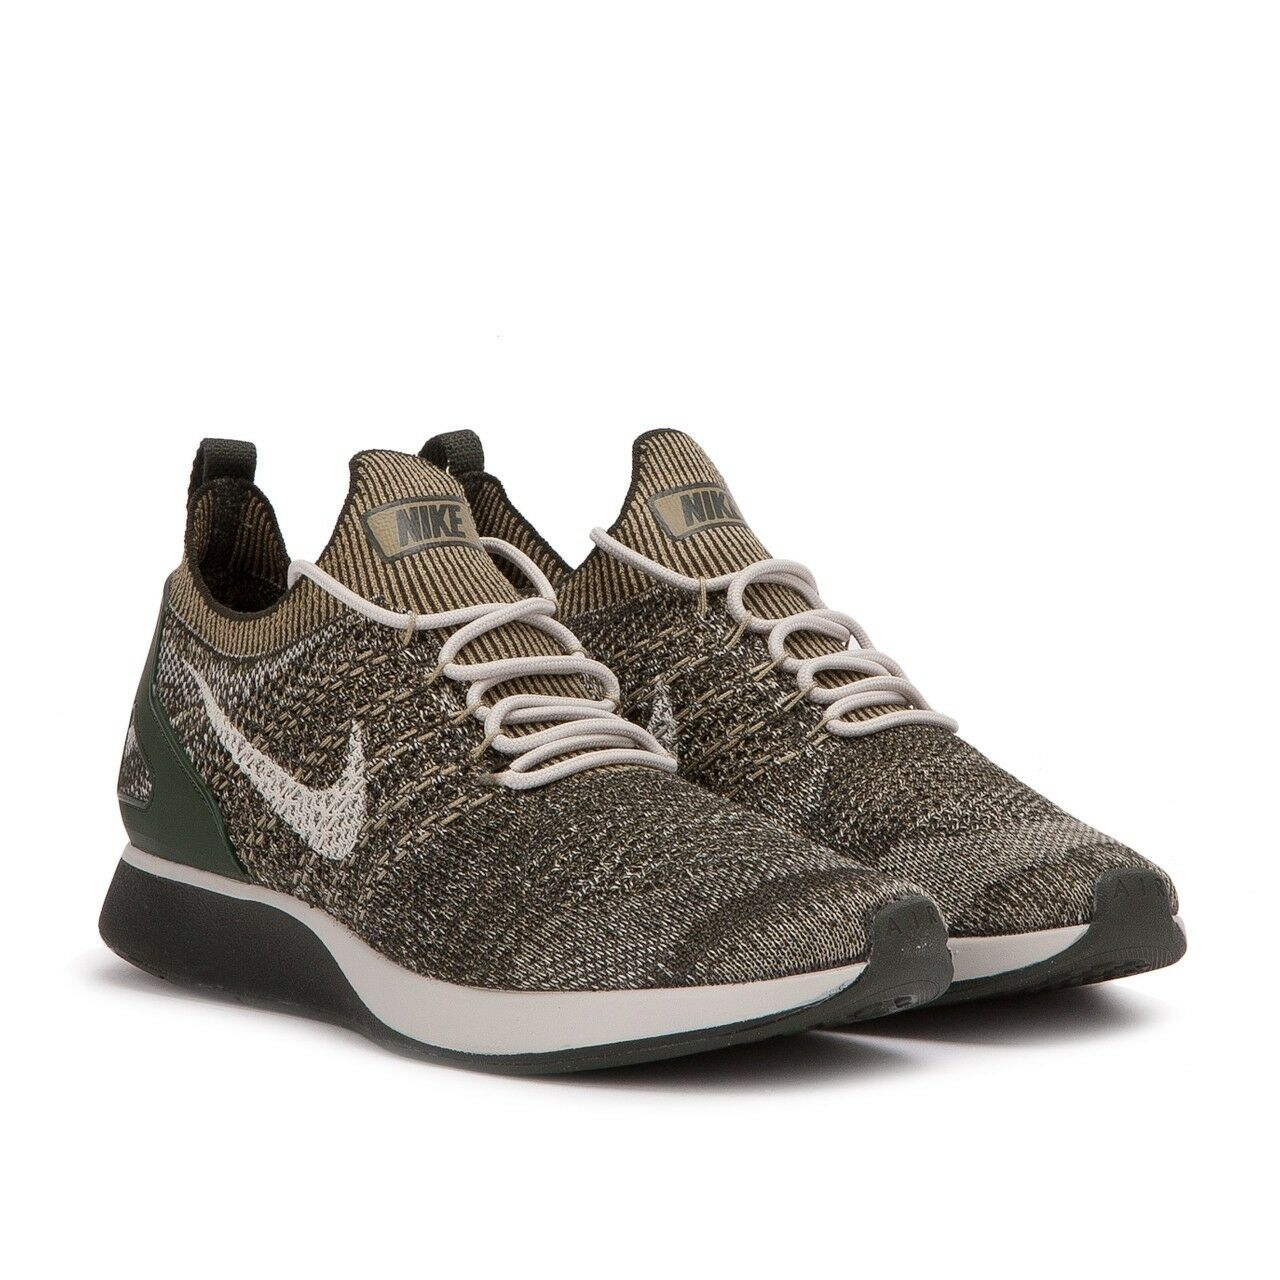 Nike Men's Free Rn Flyknit Racer Running Shoes 918264 301 Neutral Olive 10